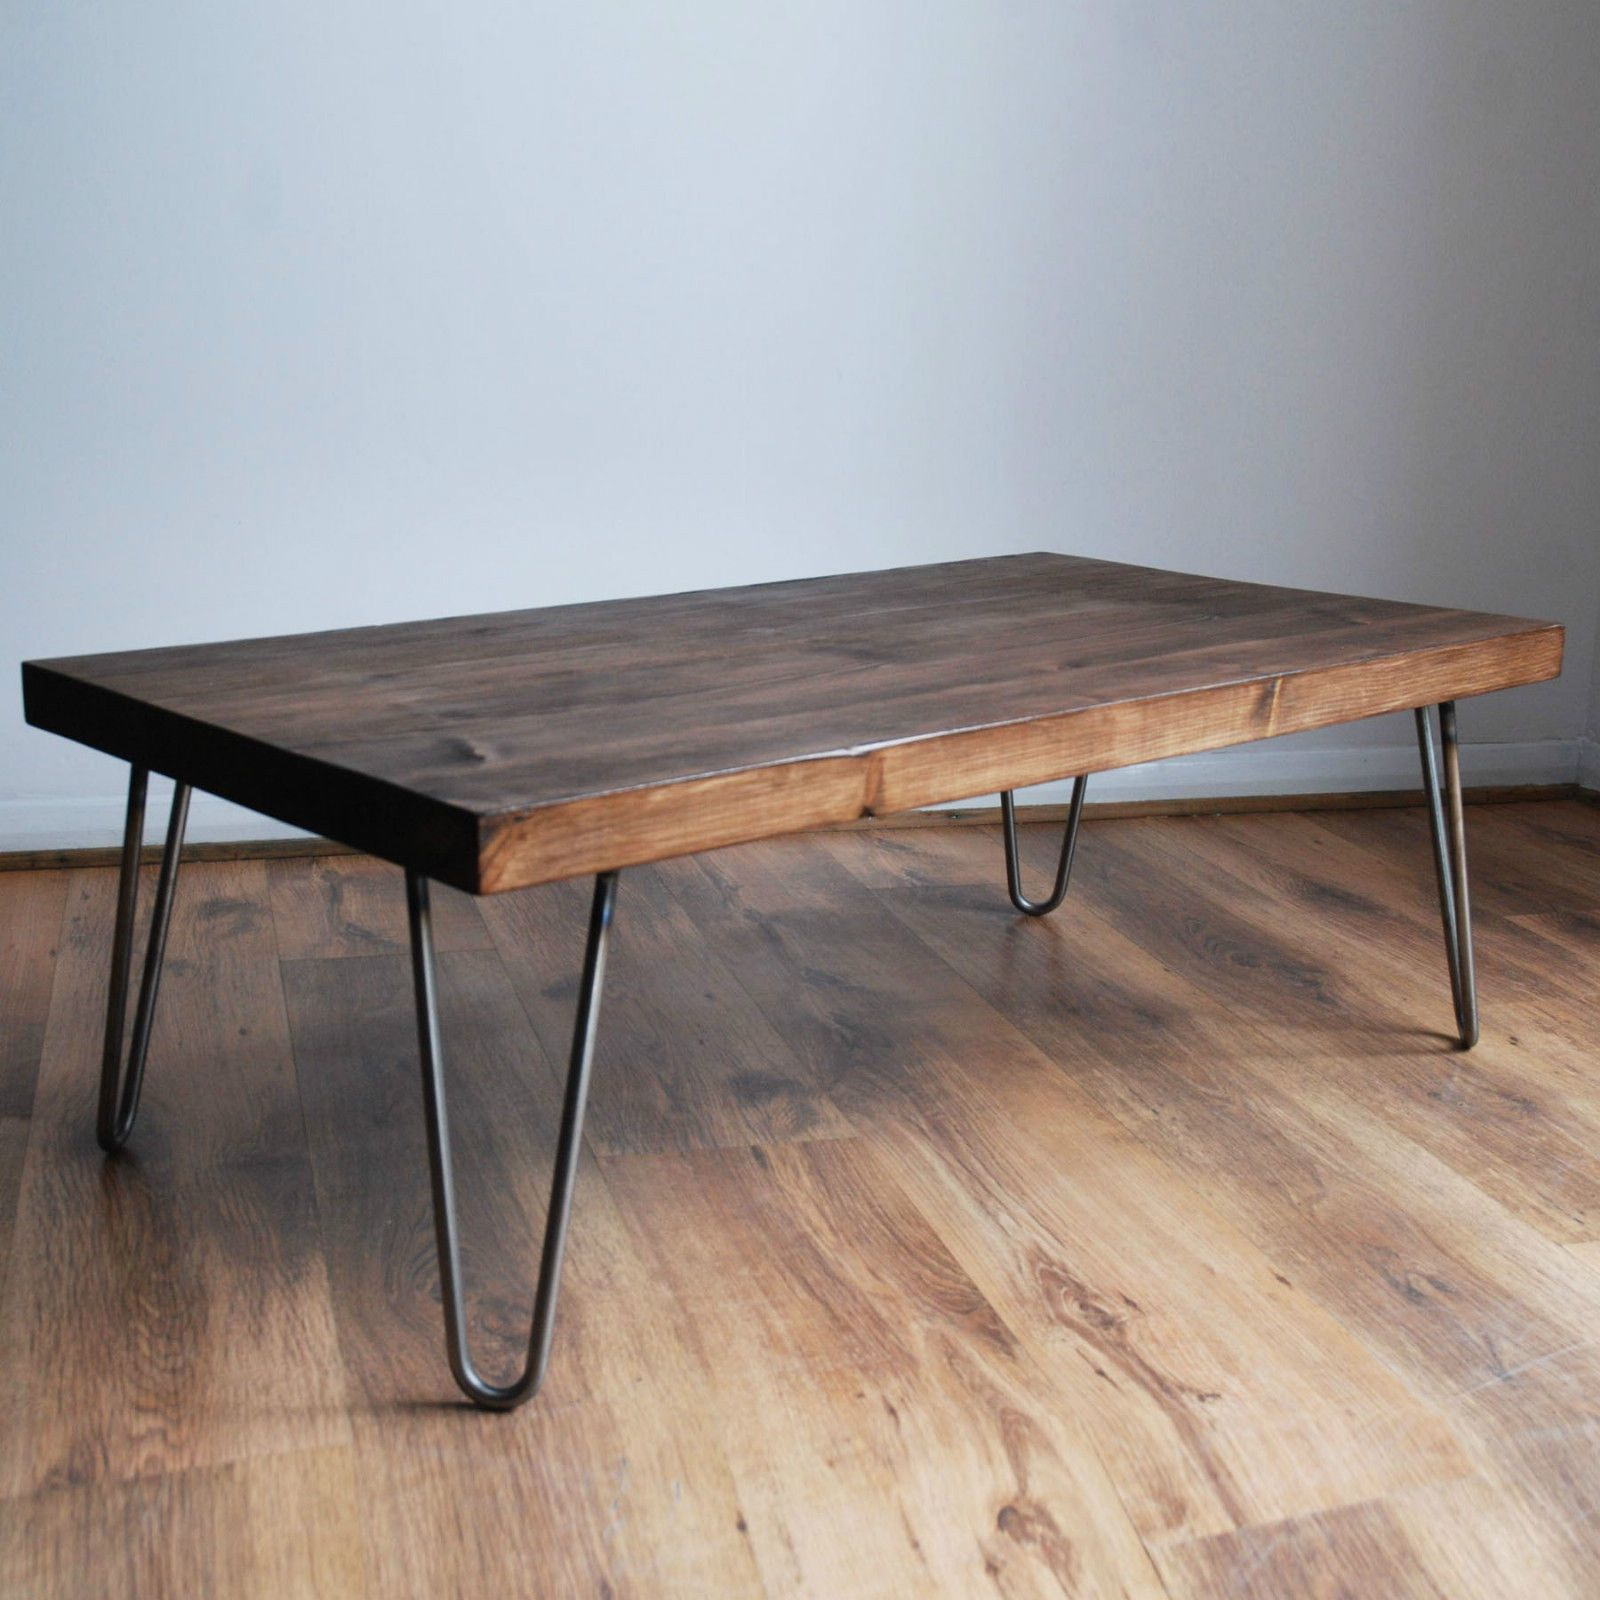 Diy Desk With Hairpin Legs Details About Rustic Vintage Industrial Solid Wood Coffee Table